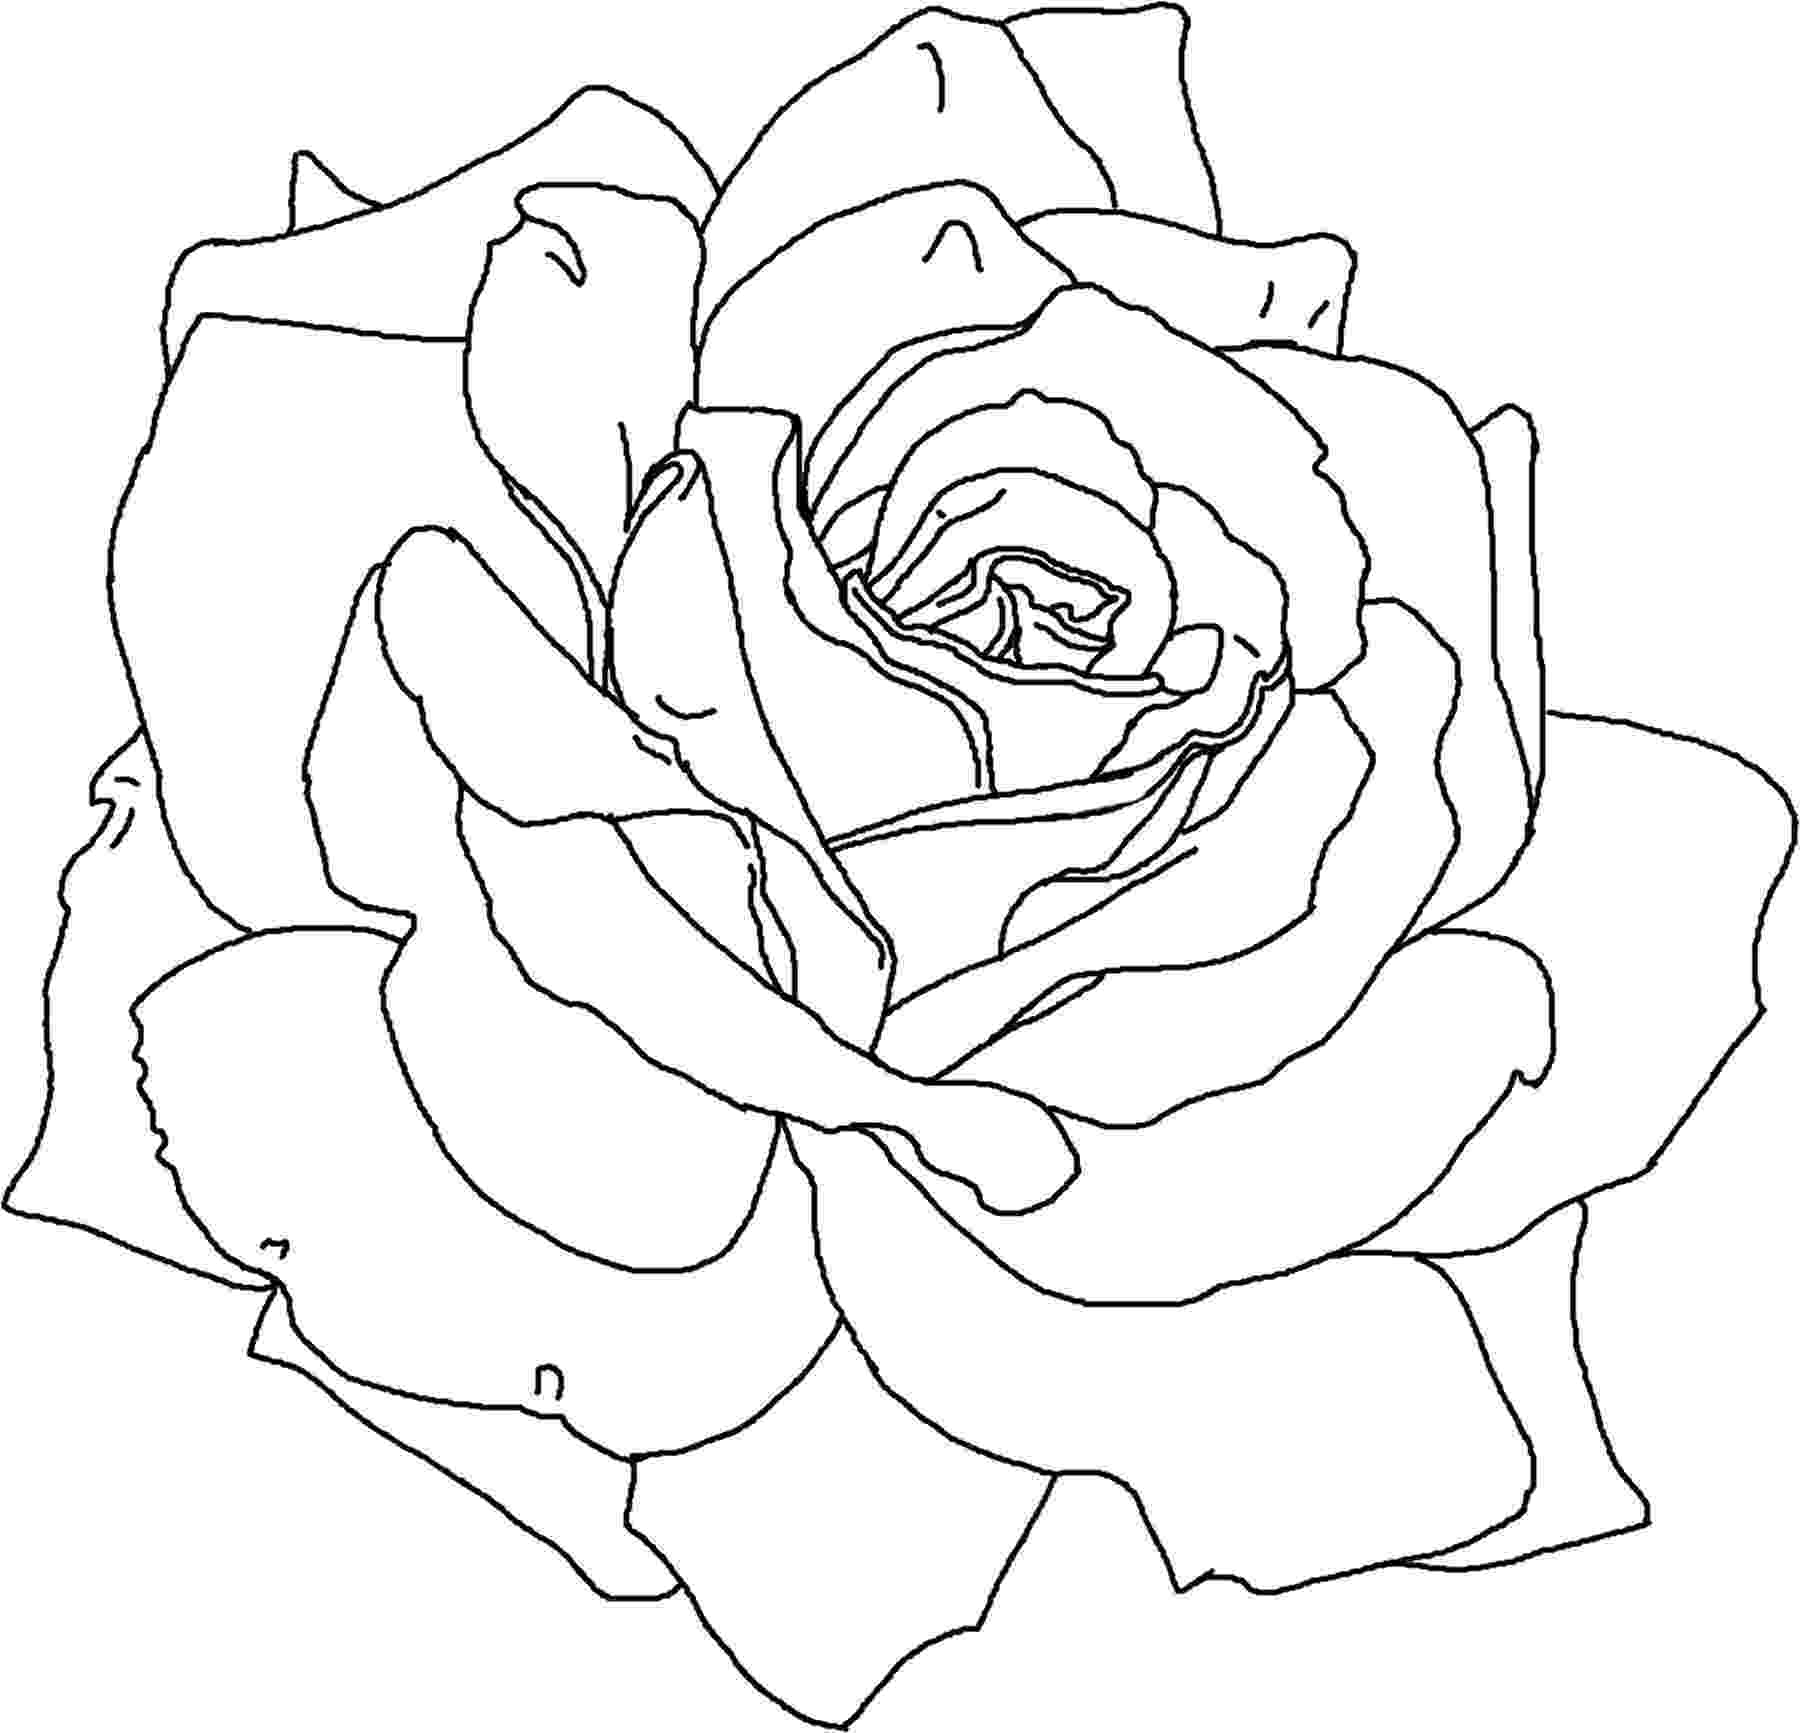 printable roses free printable roses coloring pages for kids roses printable